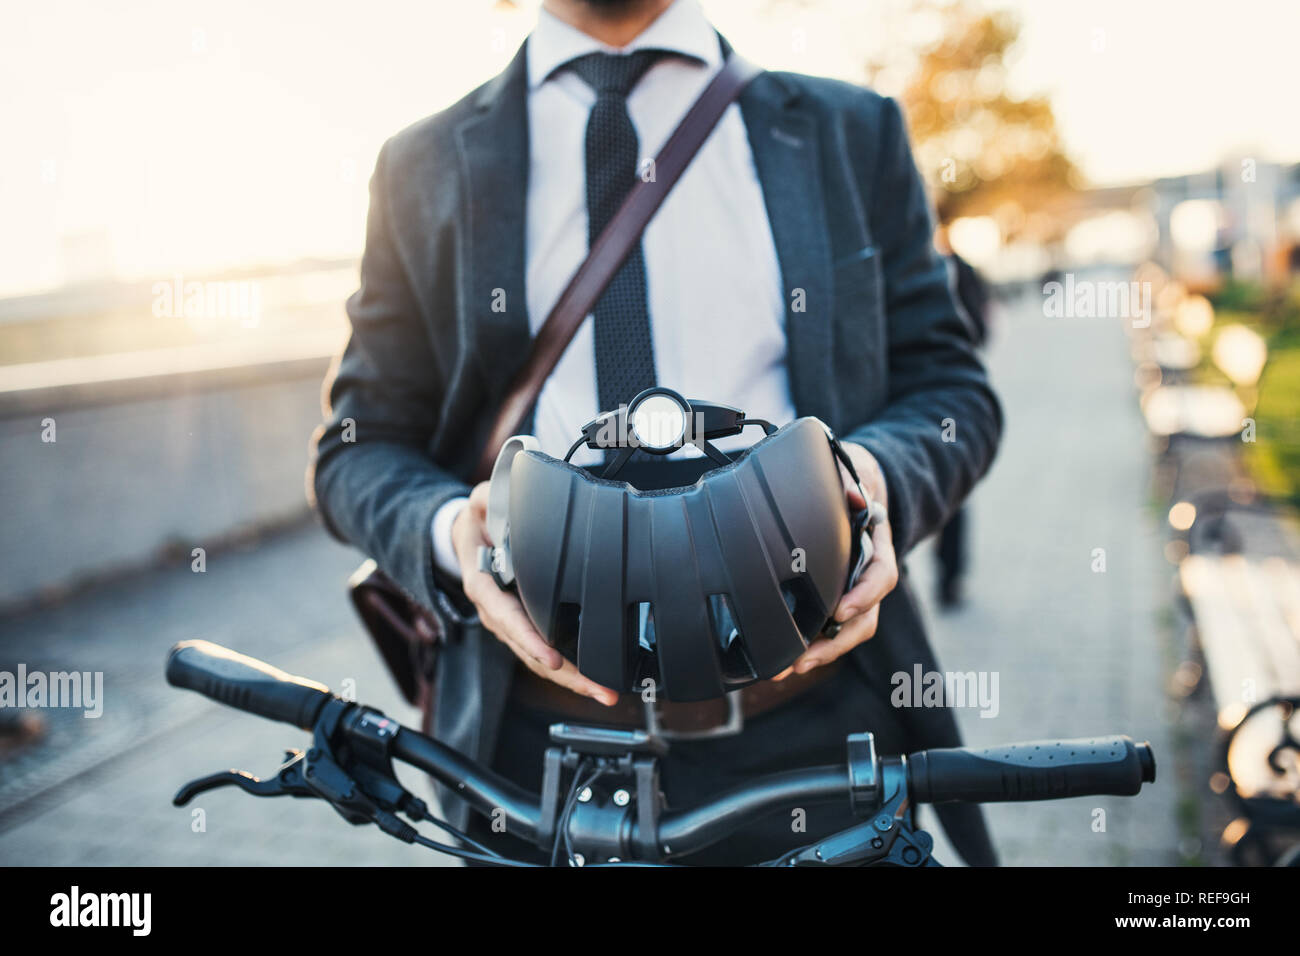 Midsection of businessman commuter with electric bicycle traveling from work in city. Stock Photo